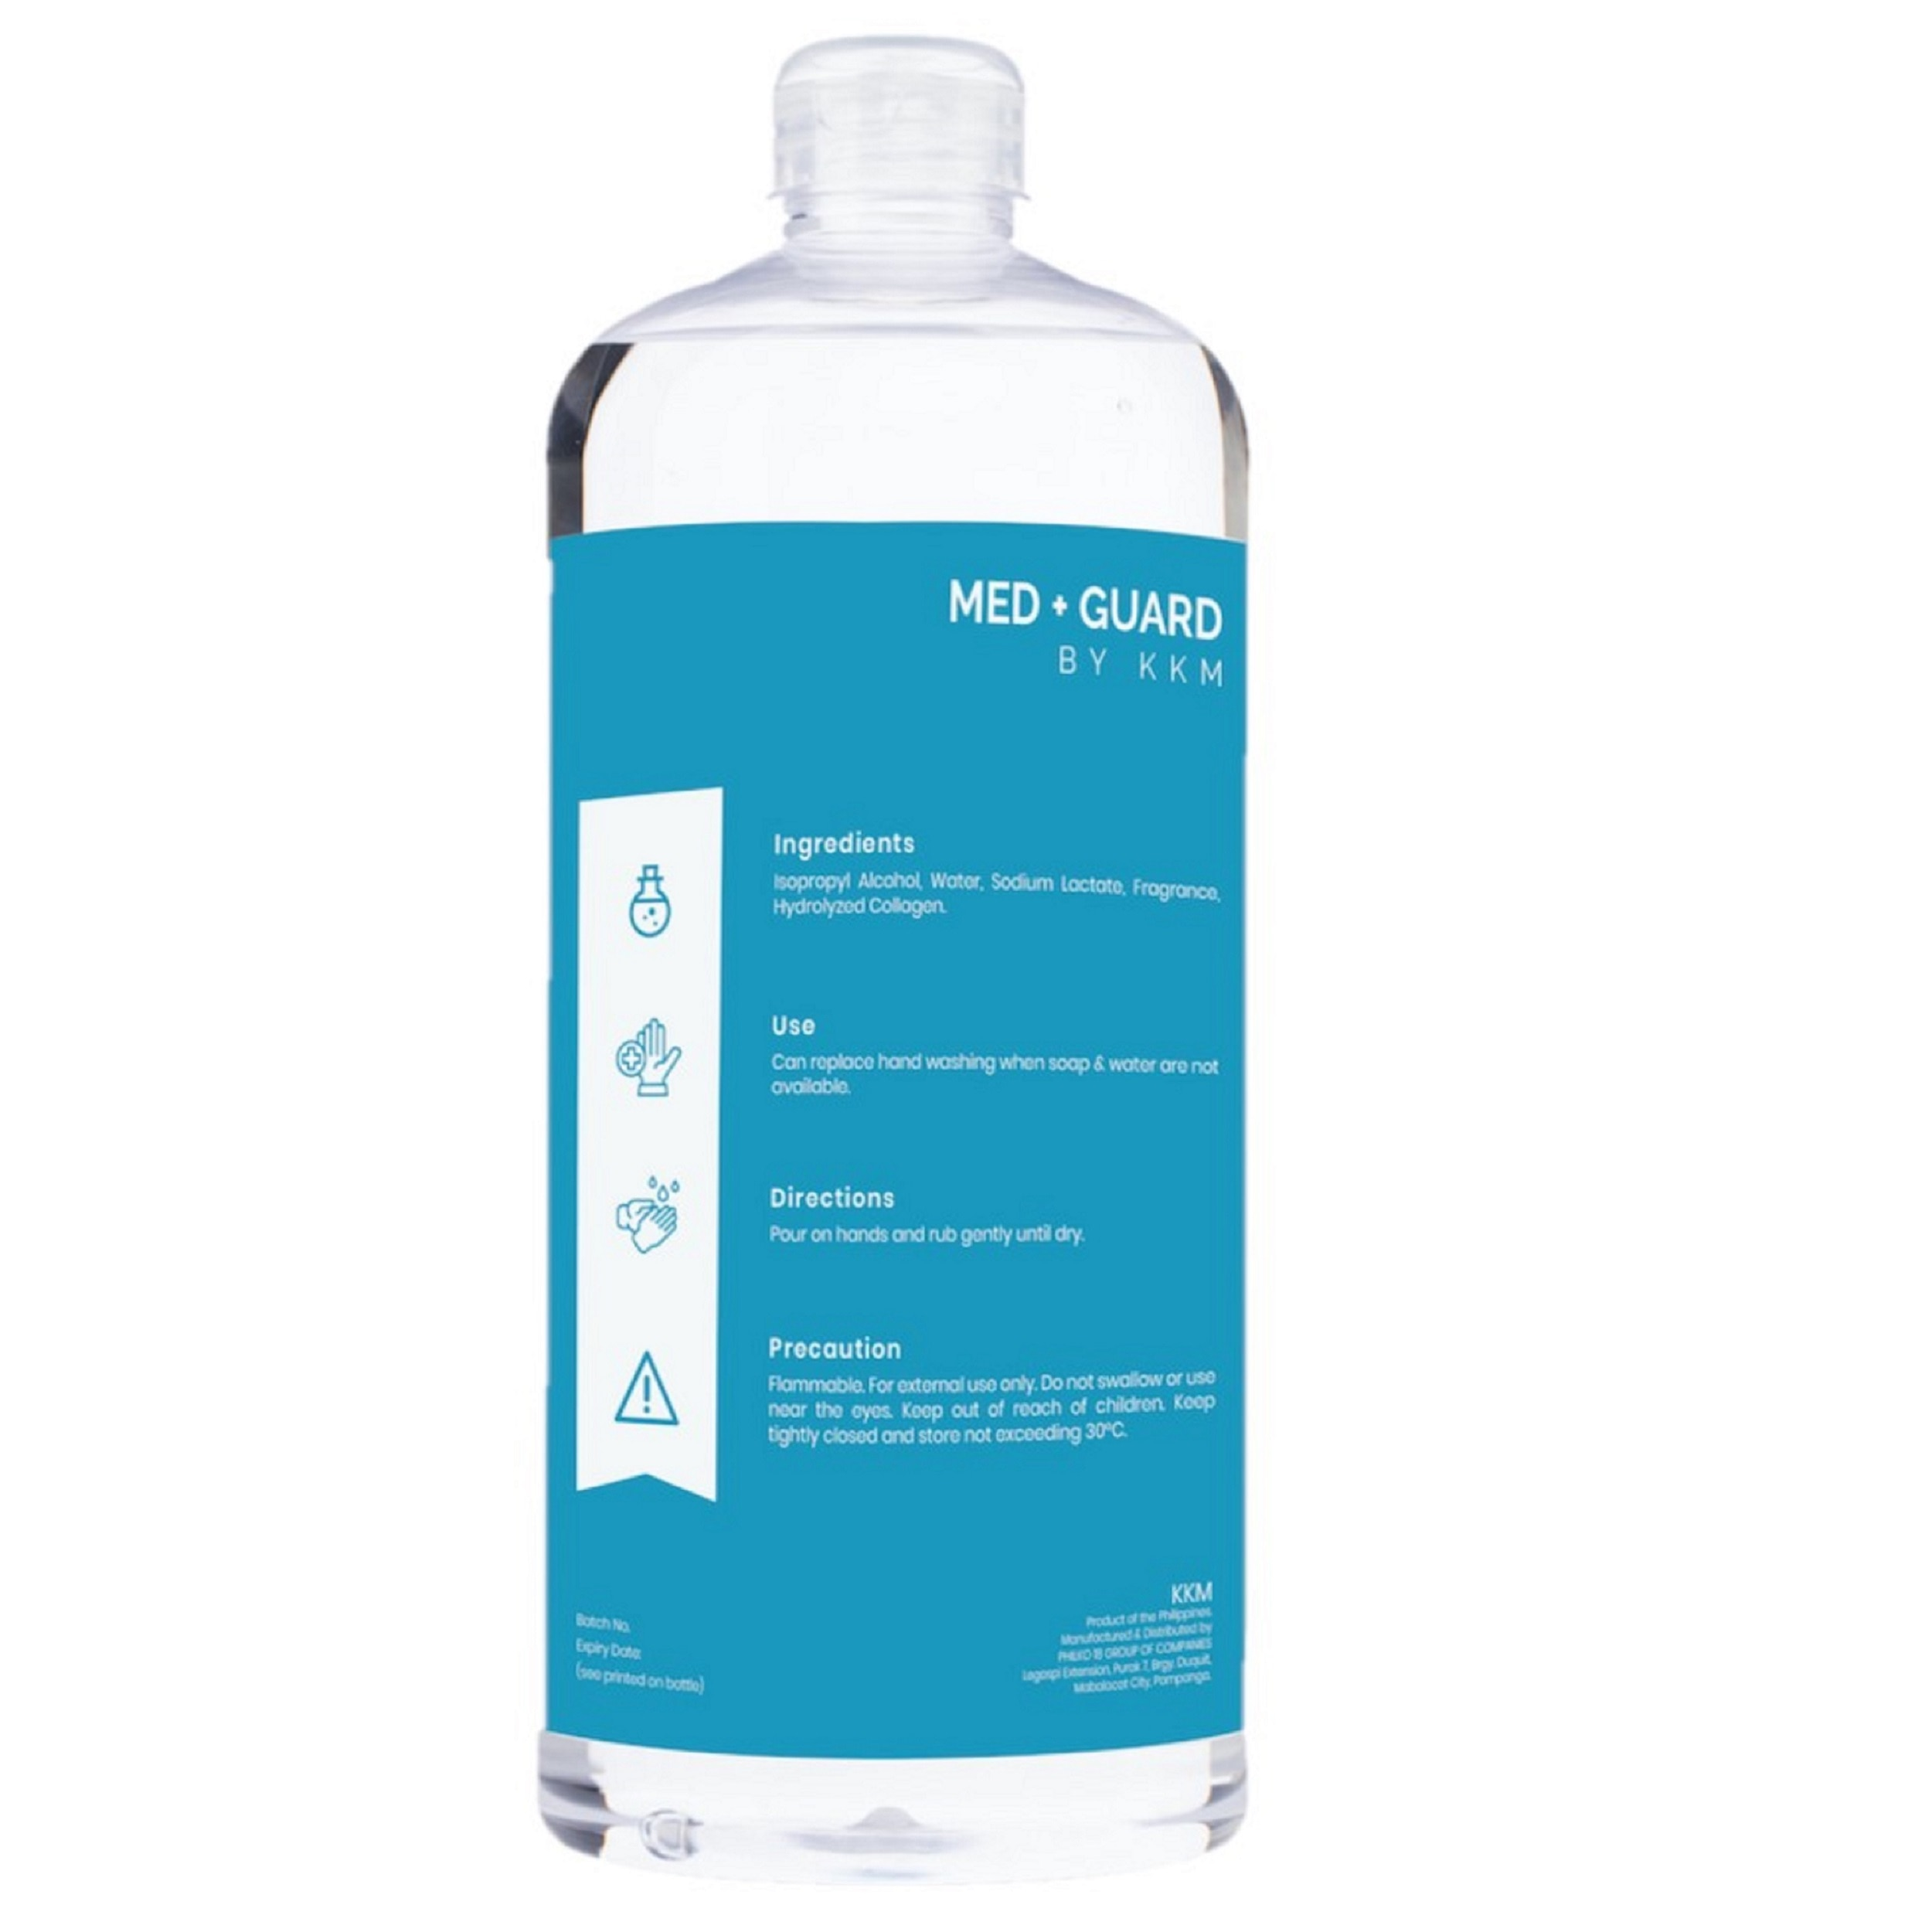 MED GUARDIsopropyl Alcohol with Collagen 1 liter,Alcohol and Disinfectant